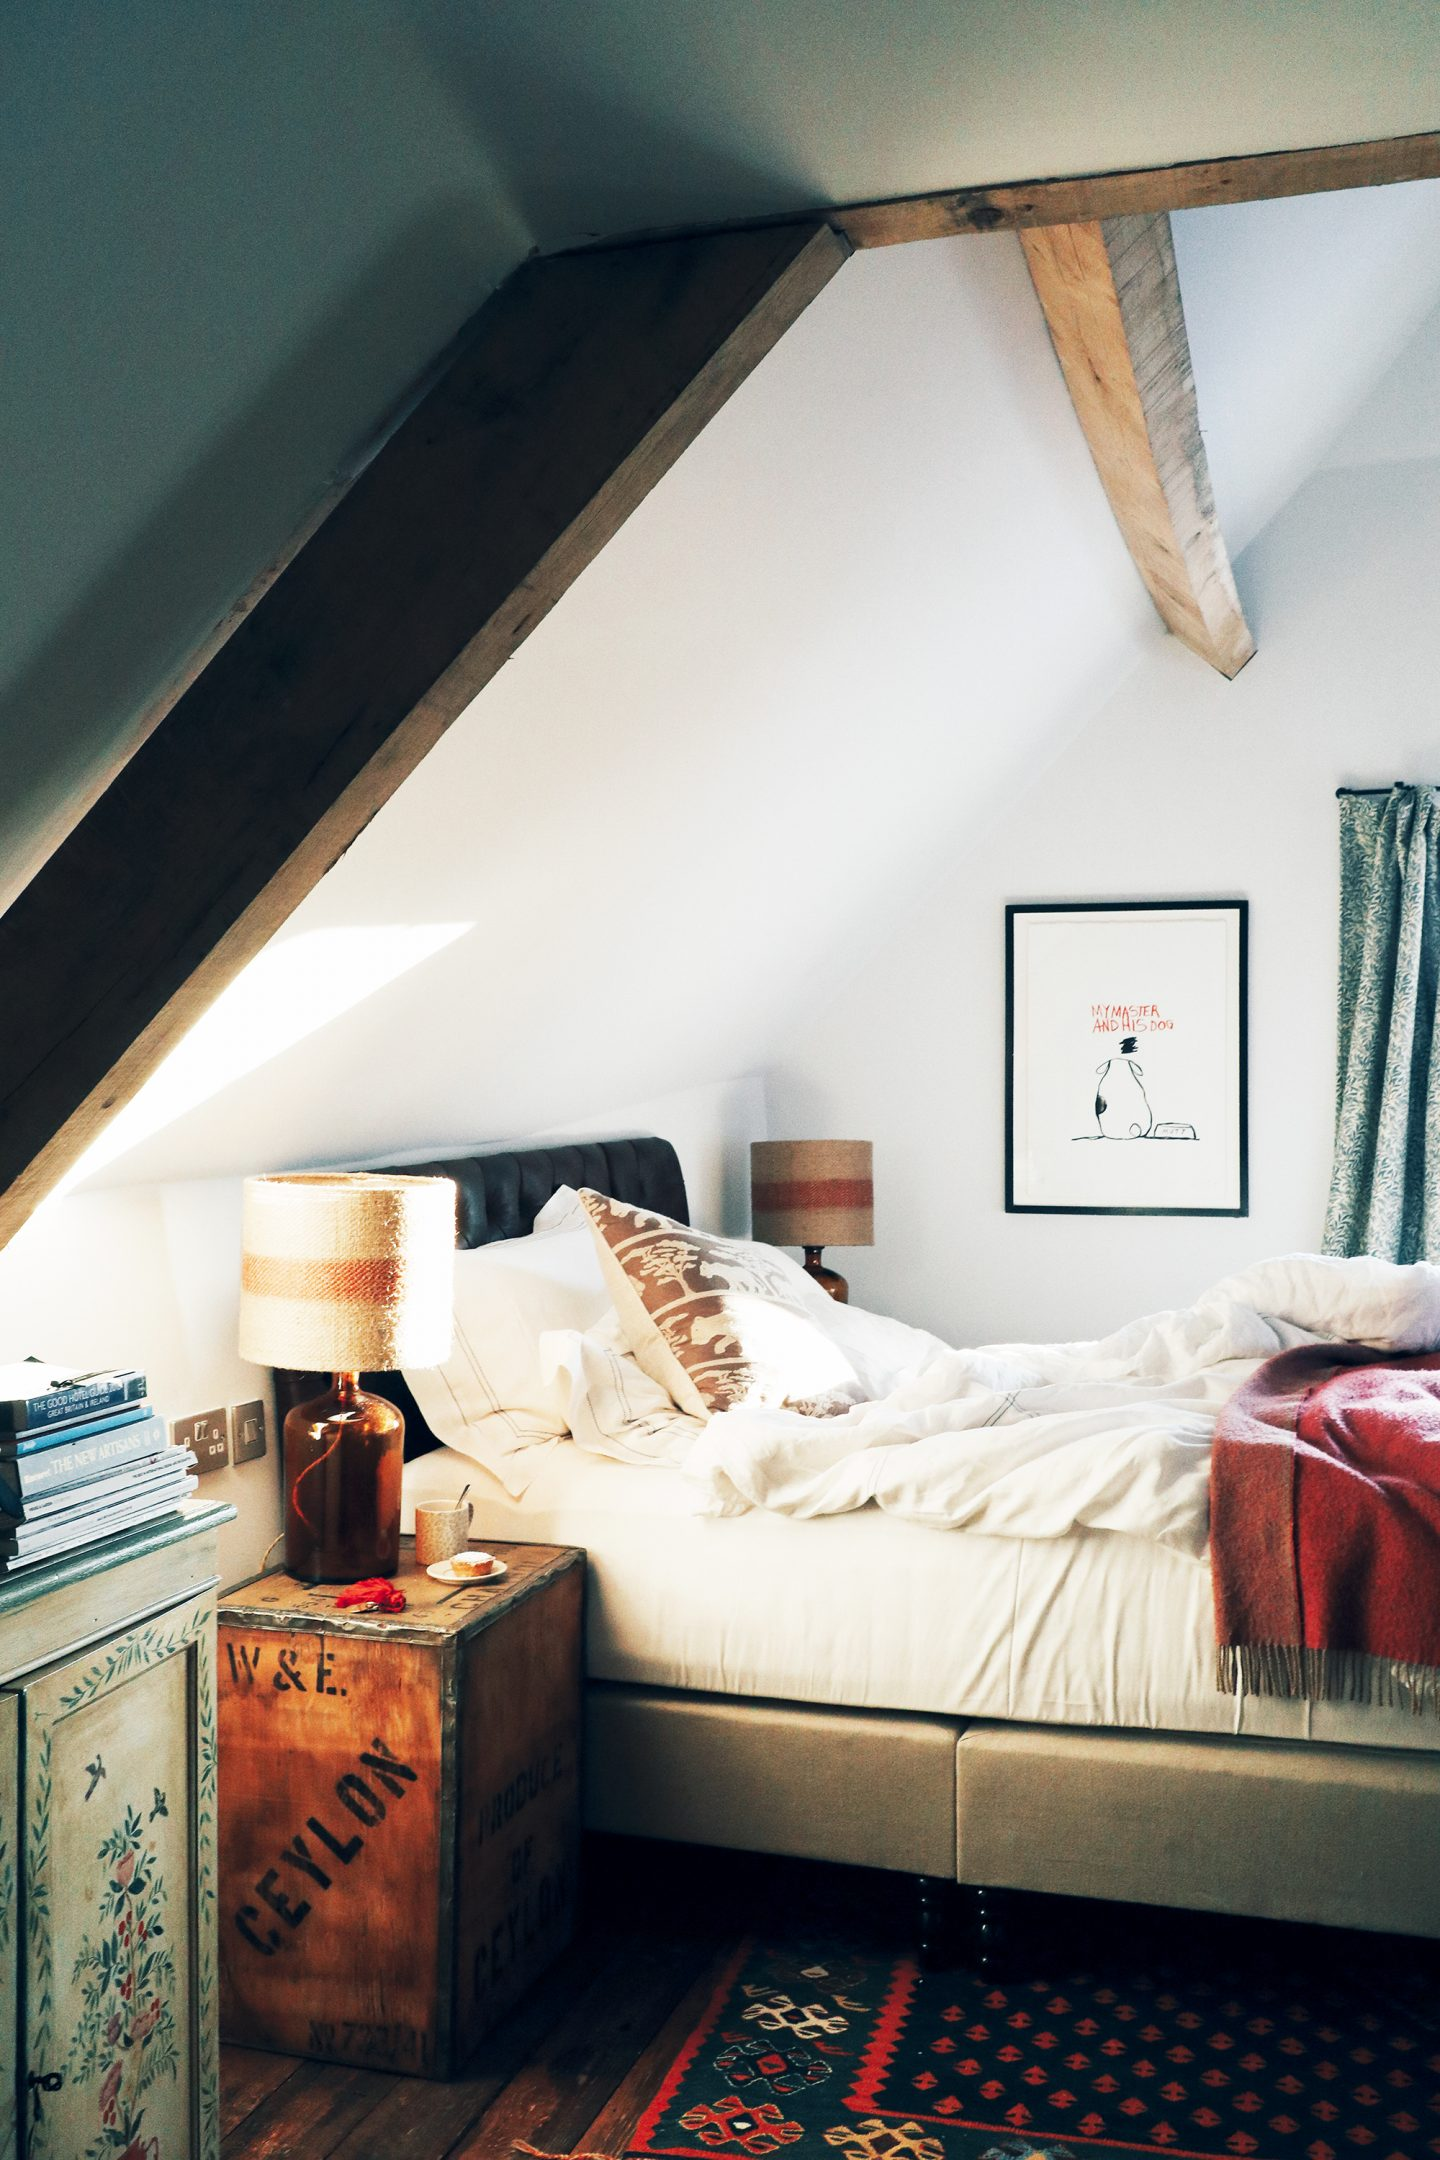 Artist residence oxfordshire Best UK Country Hotels